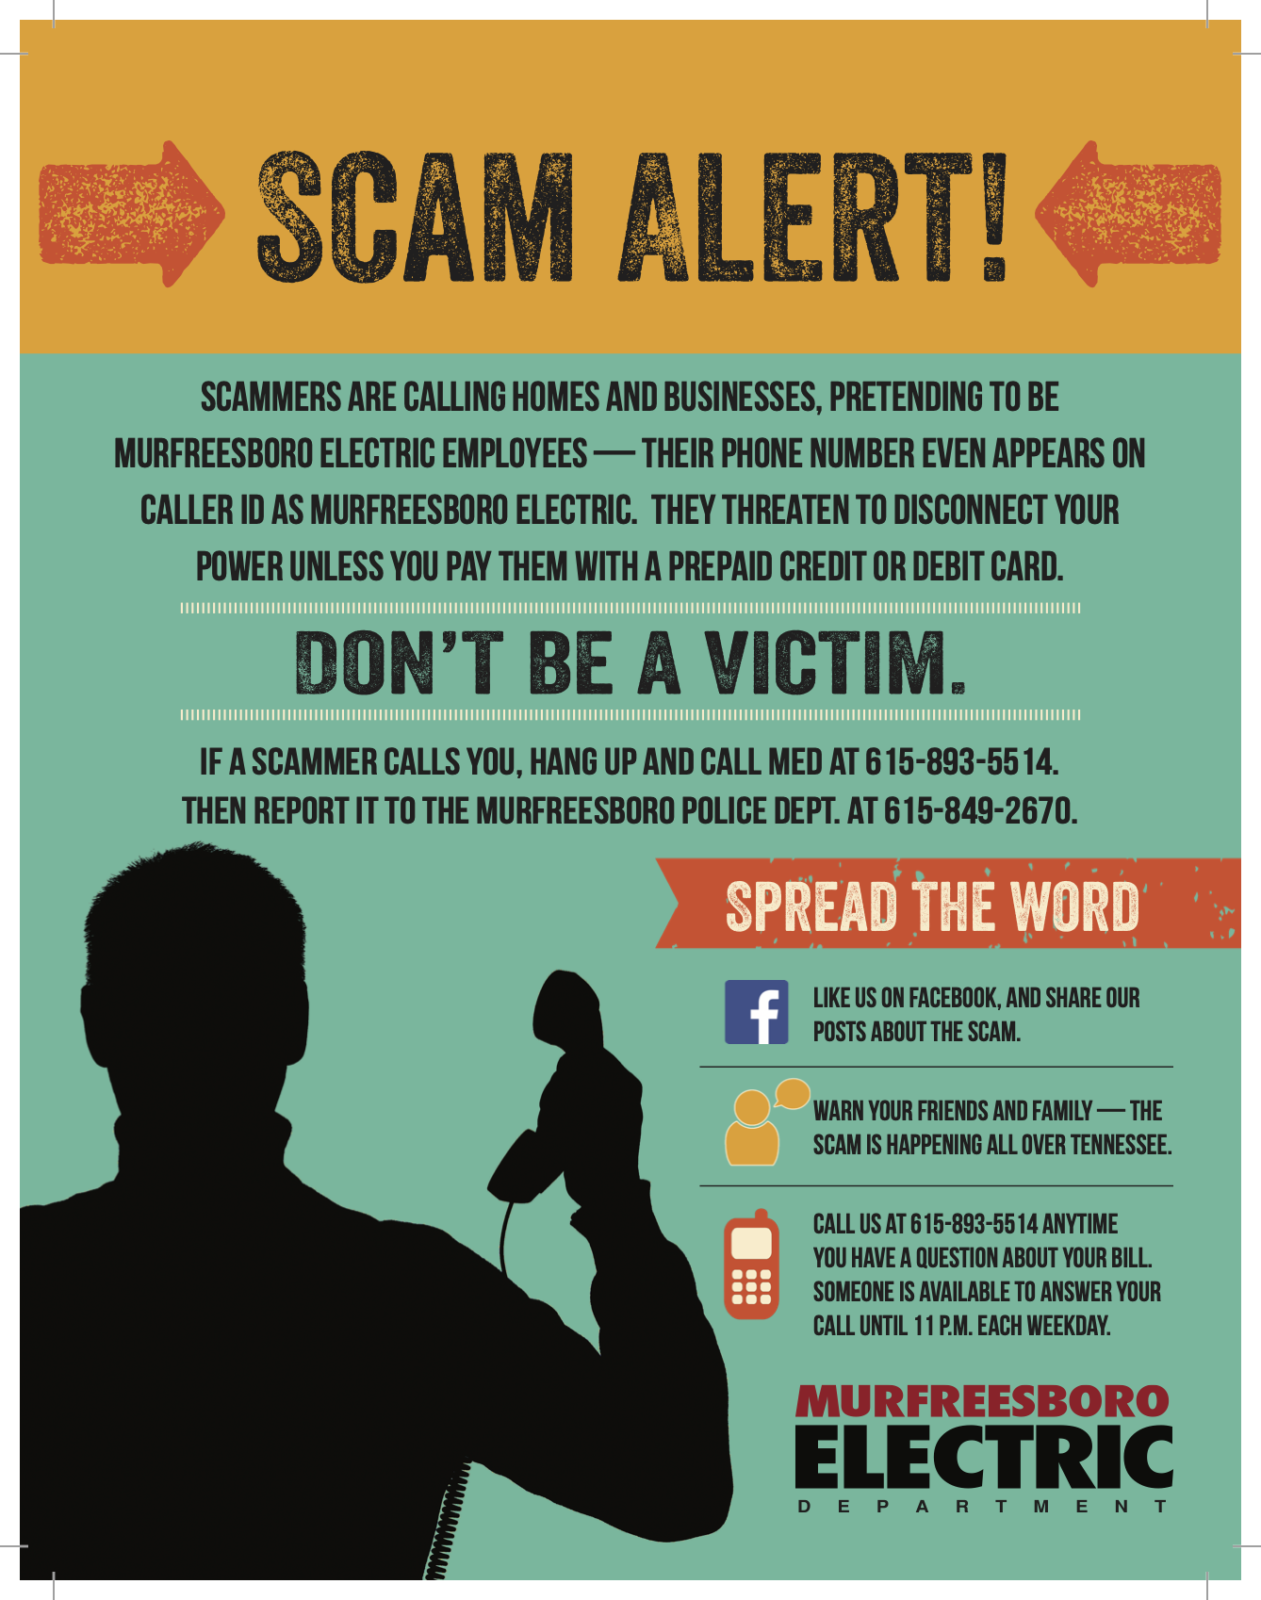 Scam alert! Scammers are calling homes and businesses, pretending to be Murfreesboro Electric employees — their phone number even appears on caller ID as Murfreesboro Electric. They threaten to disconnect your power unless you pay them with a prepaid credit or debit card. Don't be a victim. If a scammer calls you, hang up and call MED at 615-893-5514. Then report it to the Murfreesboro Police Dept. at 615-849-2670. Spread the word. Like us on Facebook, and share our posts about the scam. Warn your friends and family — the scam is happening all over Tennessee. Call us at 615-893-5514 anytime you have a question about your bill. Someone is available to answer your call until 11 P.M. each weekday. Murfreesboro Electric Department.